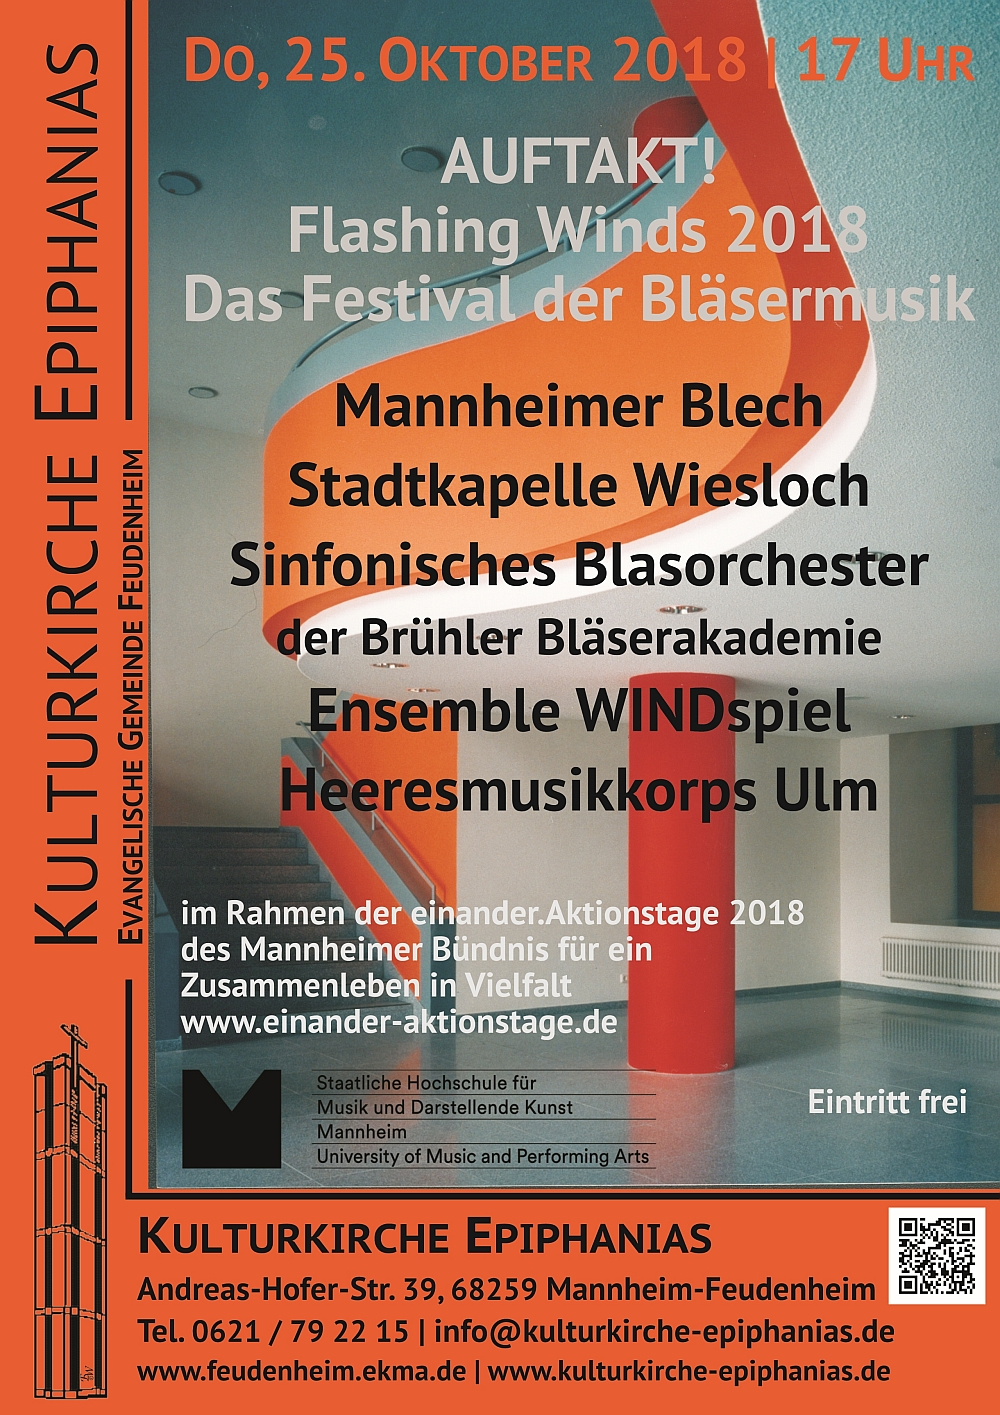 AUFTAKT! - Flashing Winds 2018